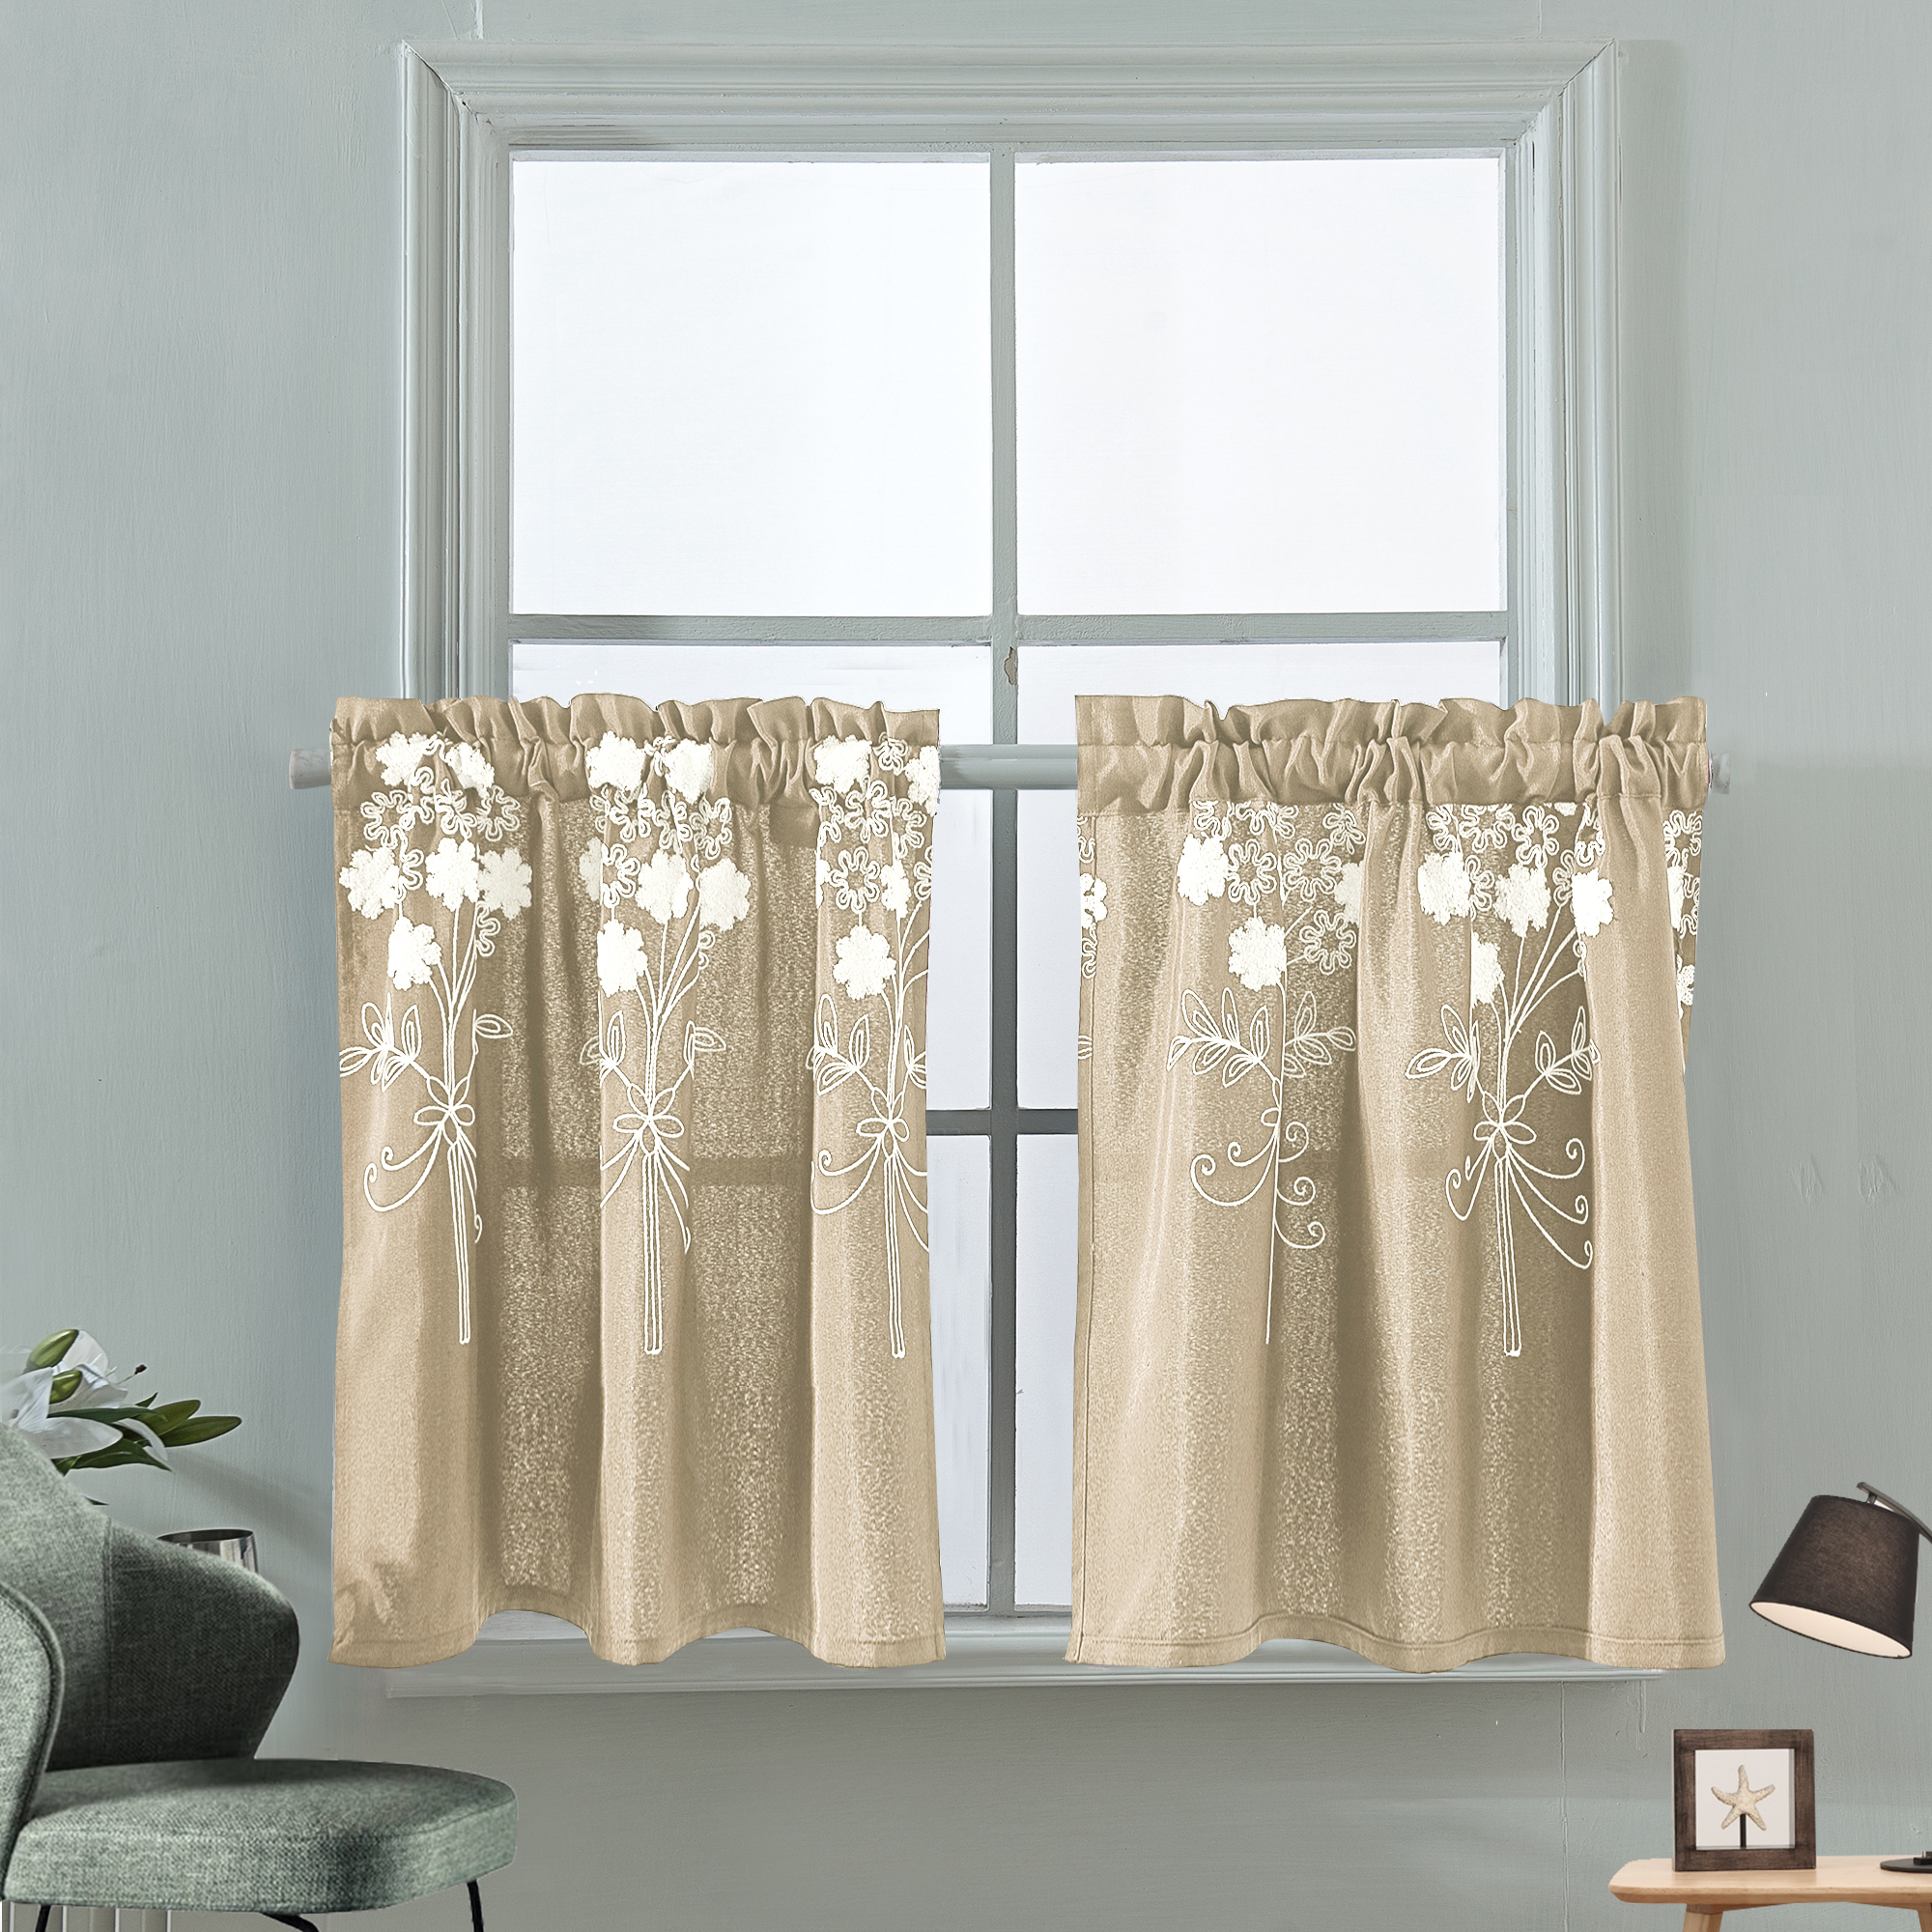 embroidered flower half short curtain kitchen blind cafe curtains panel ready made for kitchen bedroom bathroom window decor beige 74 61cm